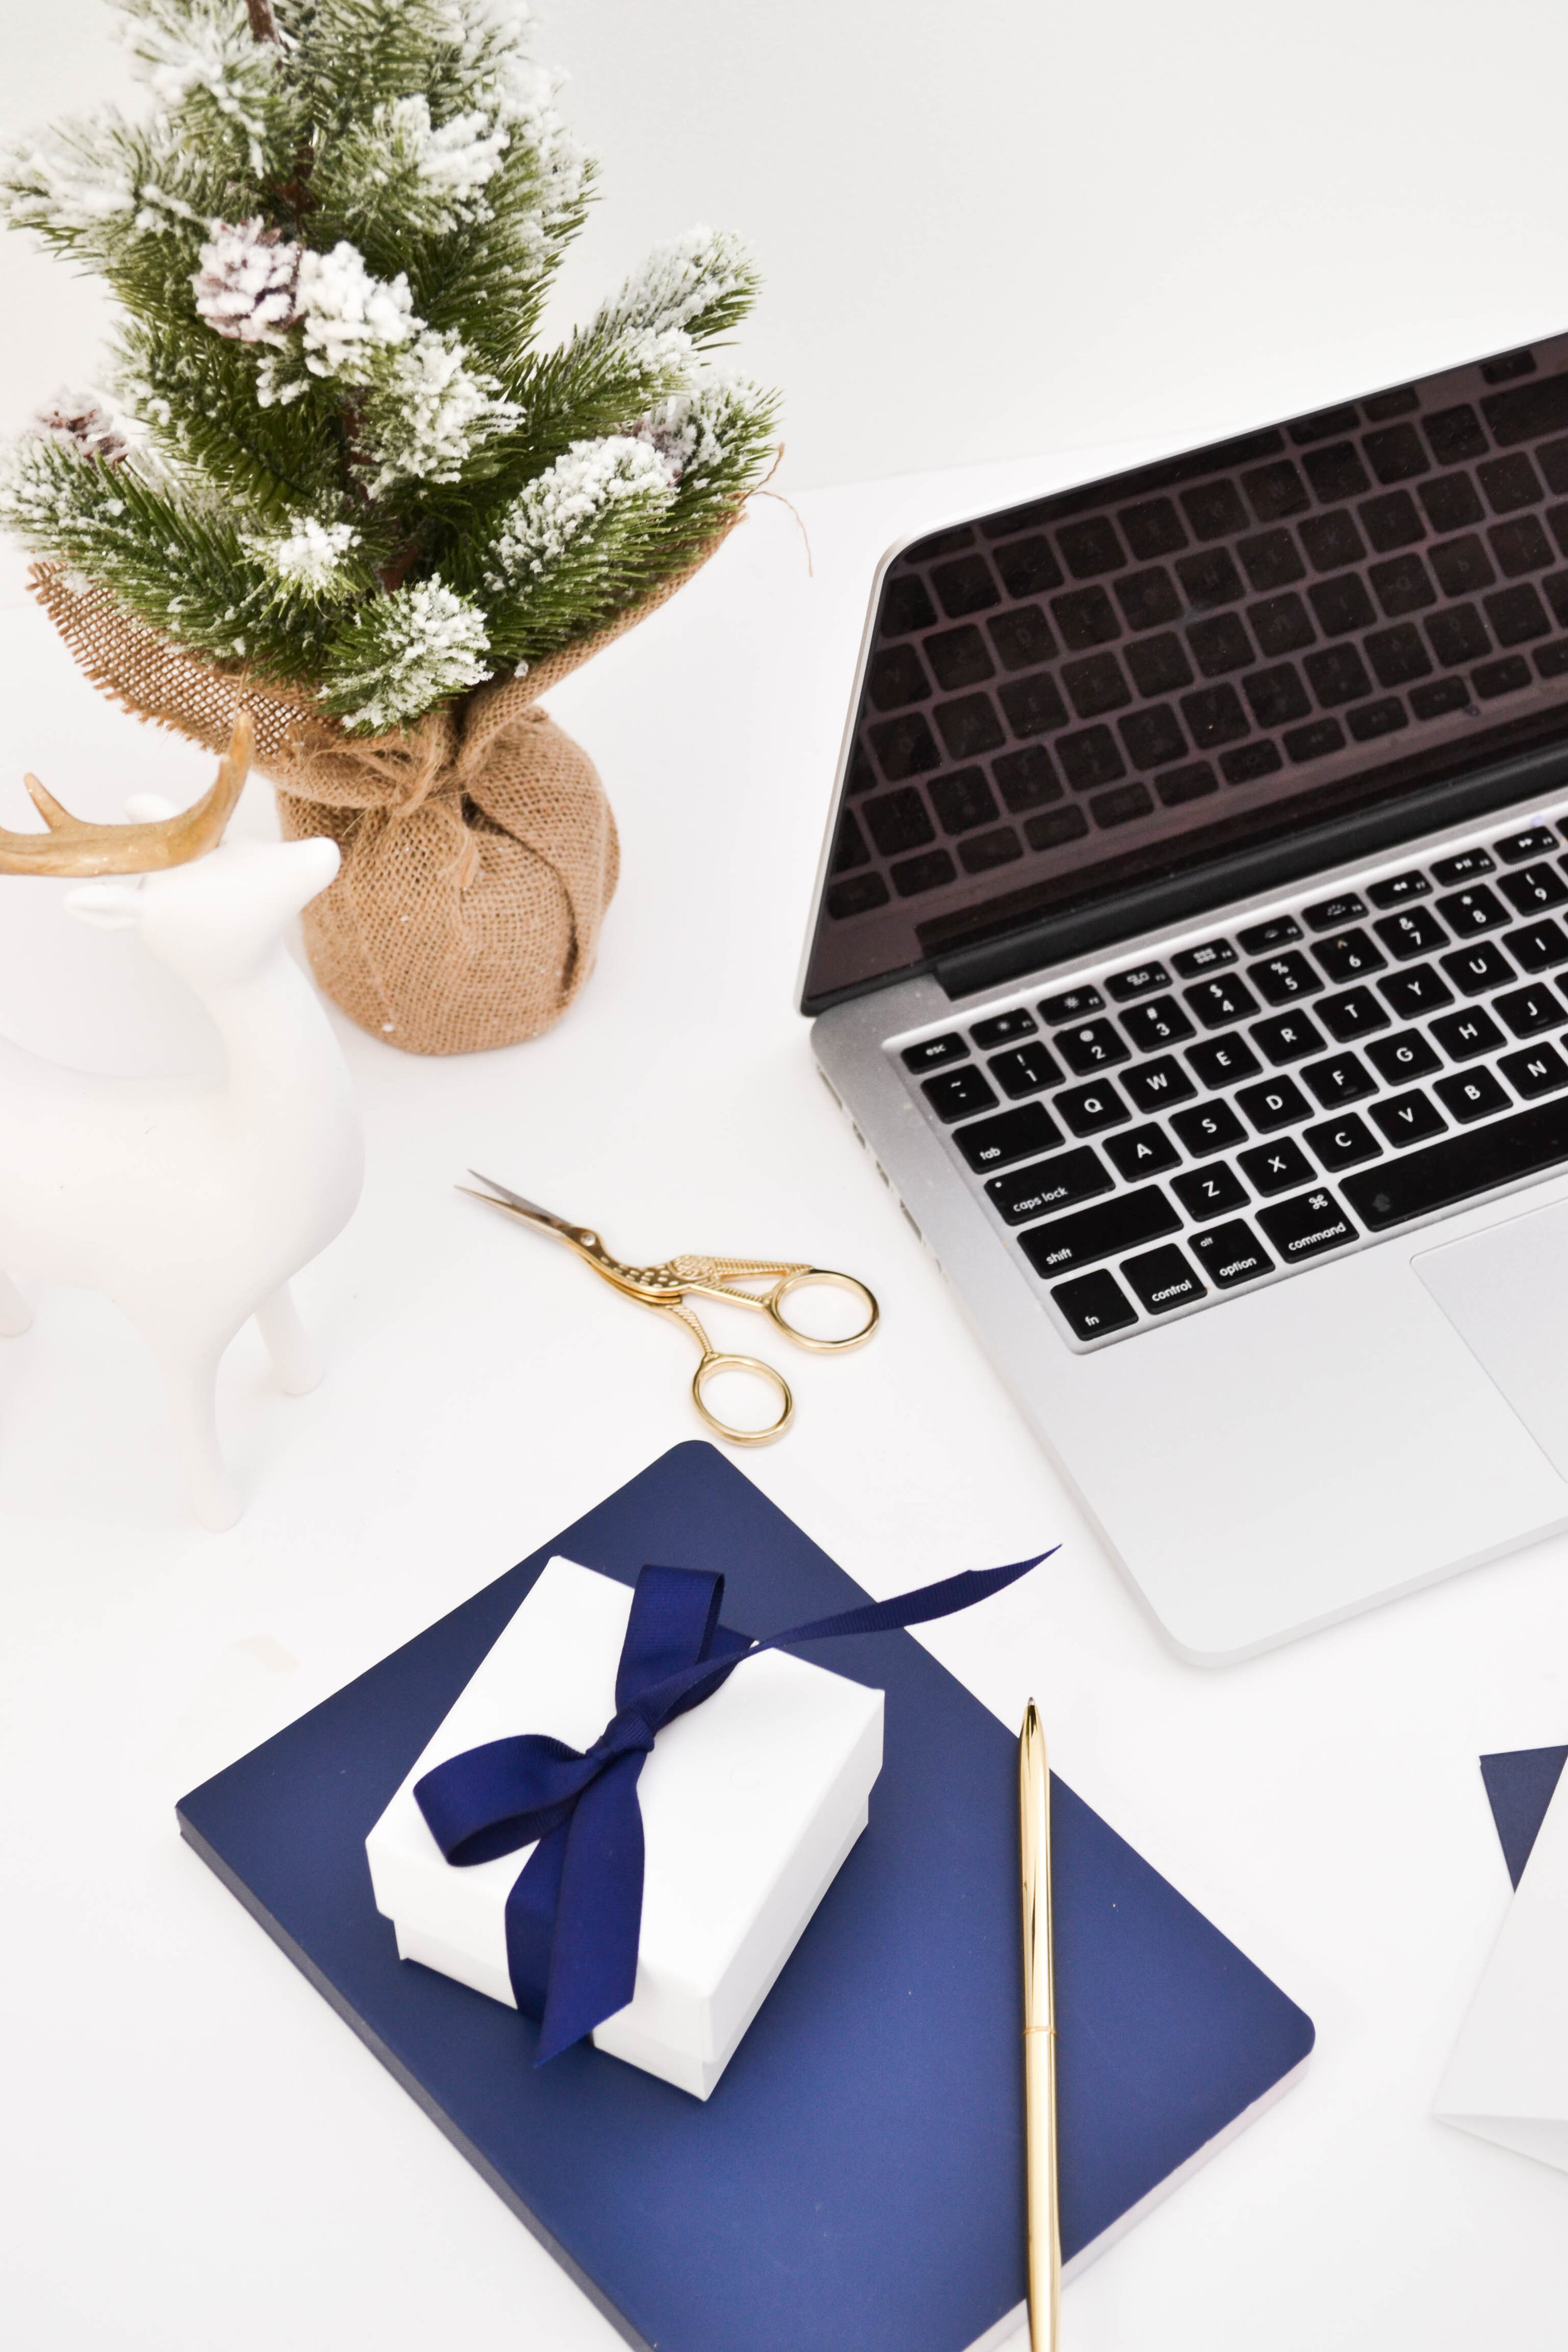 Pixistock is another great stock photography website for female entrepreneurs.